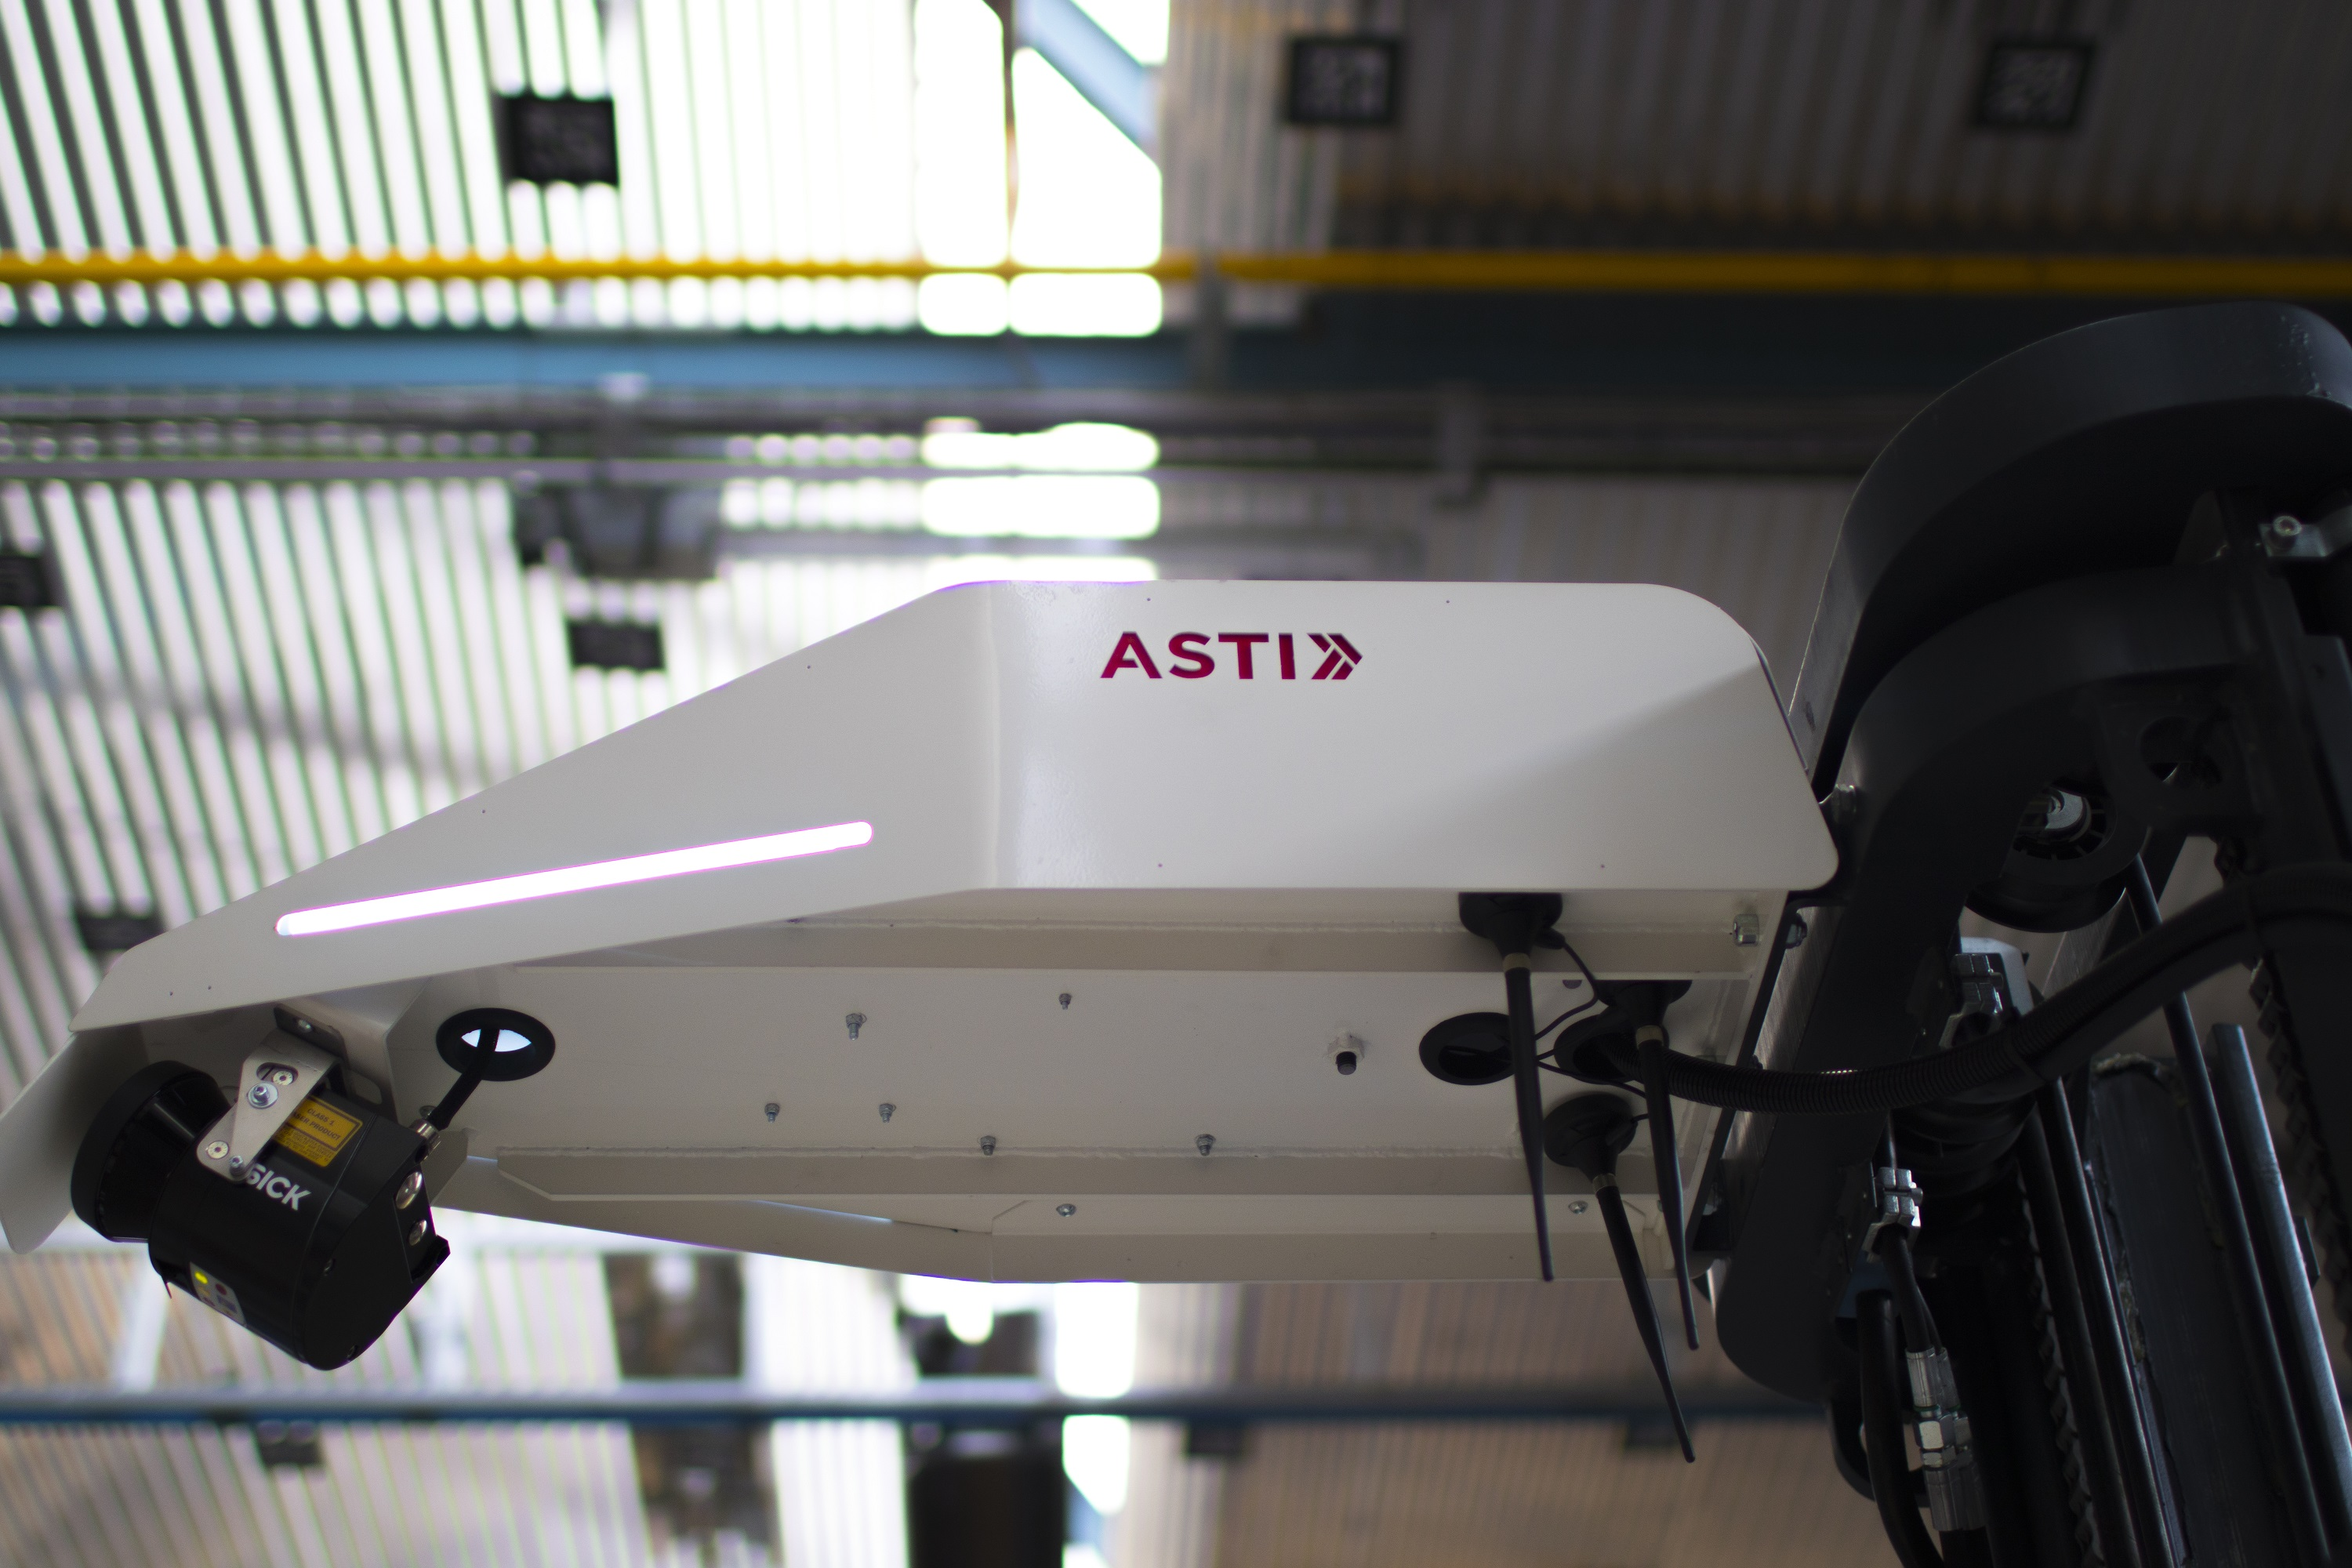 Telefónica and ASTI Mobile Robotics come together to accelerate the digitalization of industrial environments with IoT